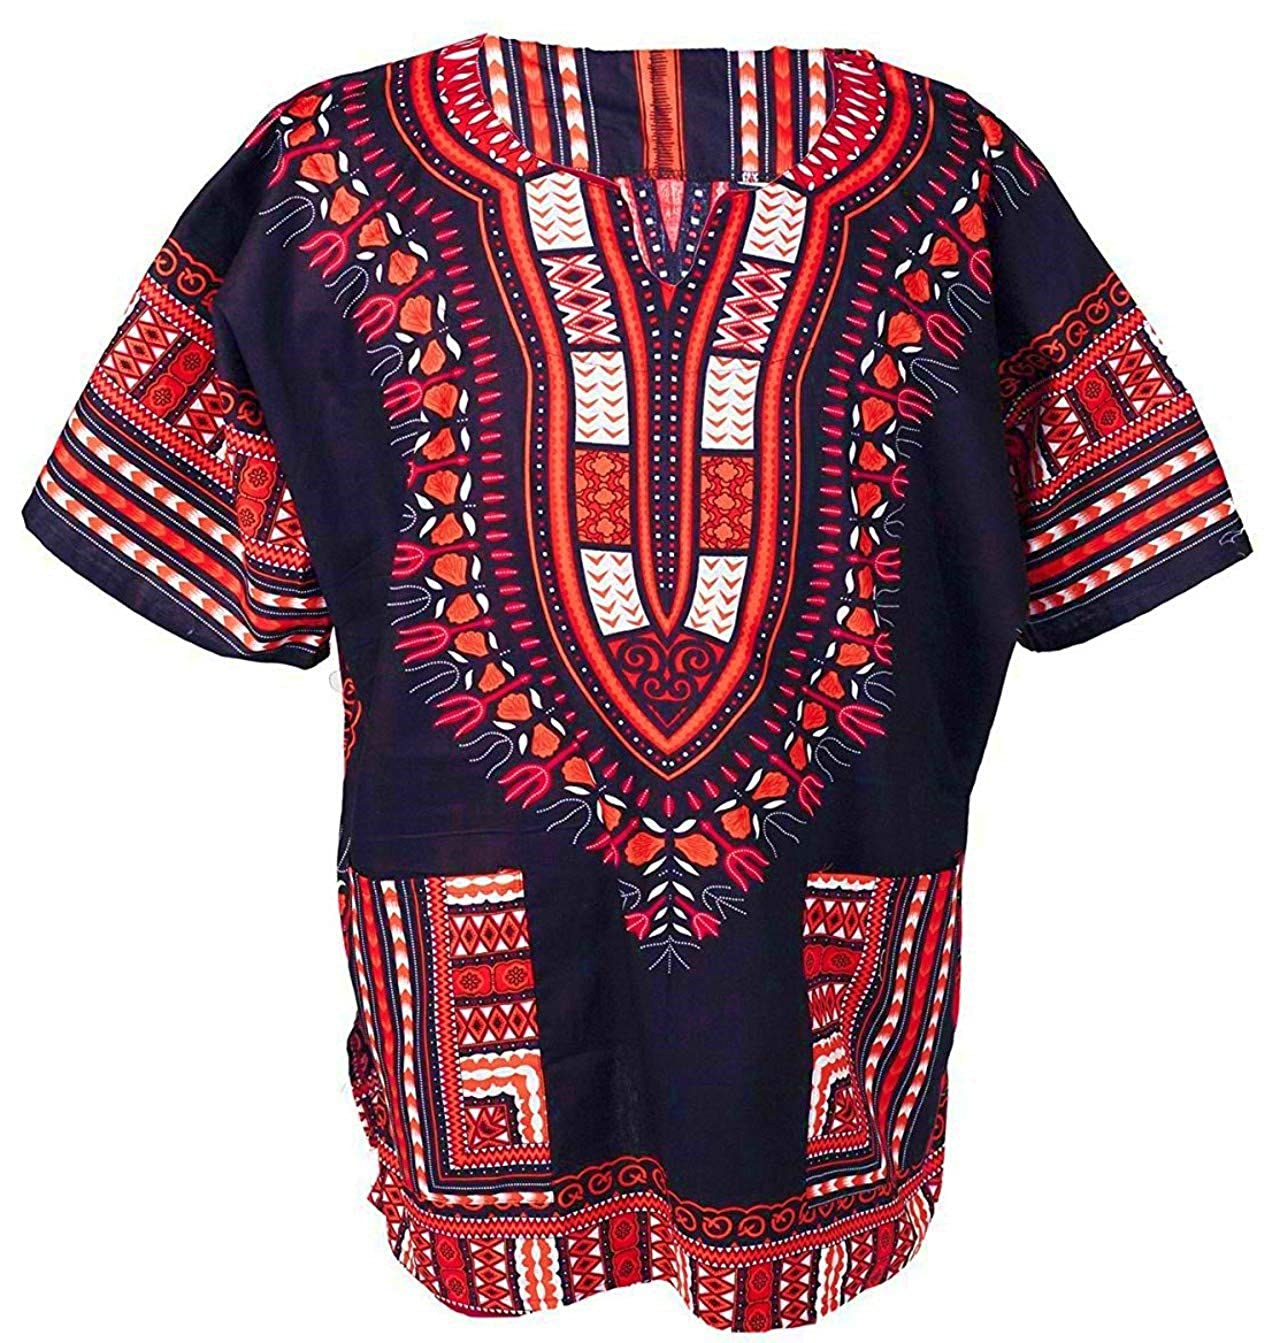 3215490a1b820 Produced from 100% quality cotton  This beautiful African Bright Dashiki  Cotton Shirt is produced from 100% quality cotton. This is because we value  your ...